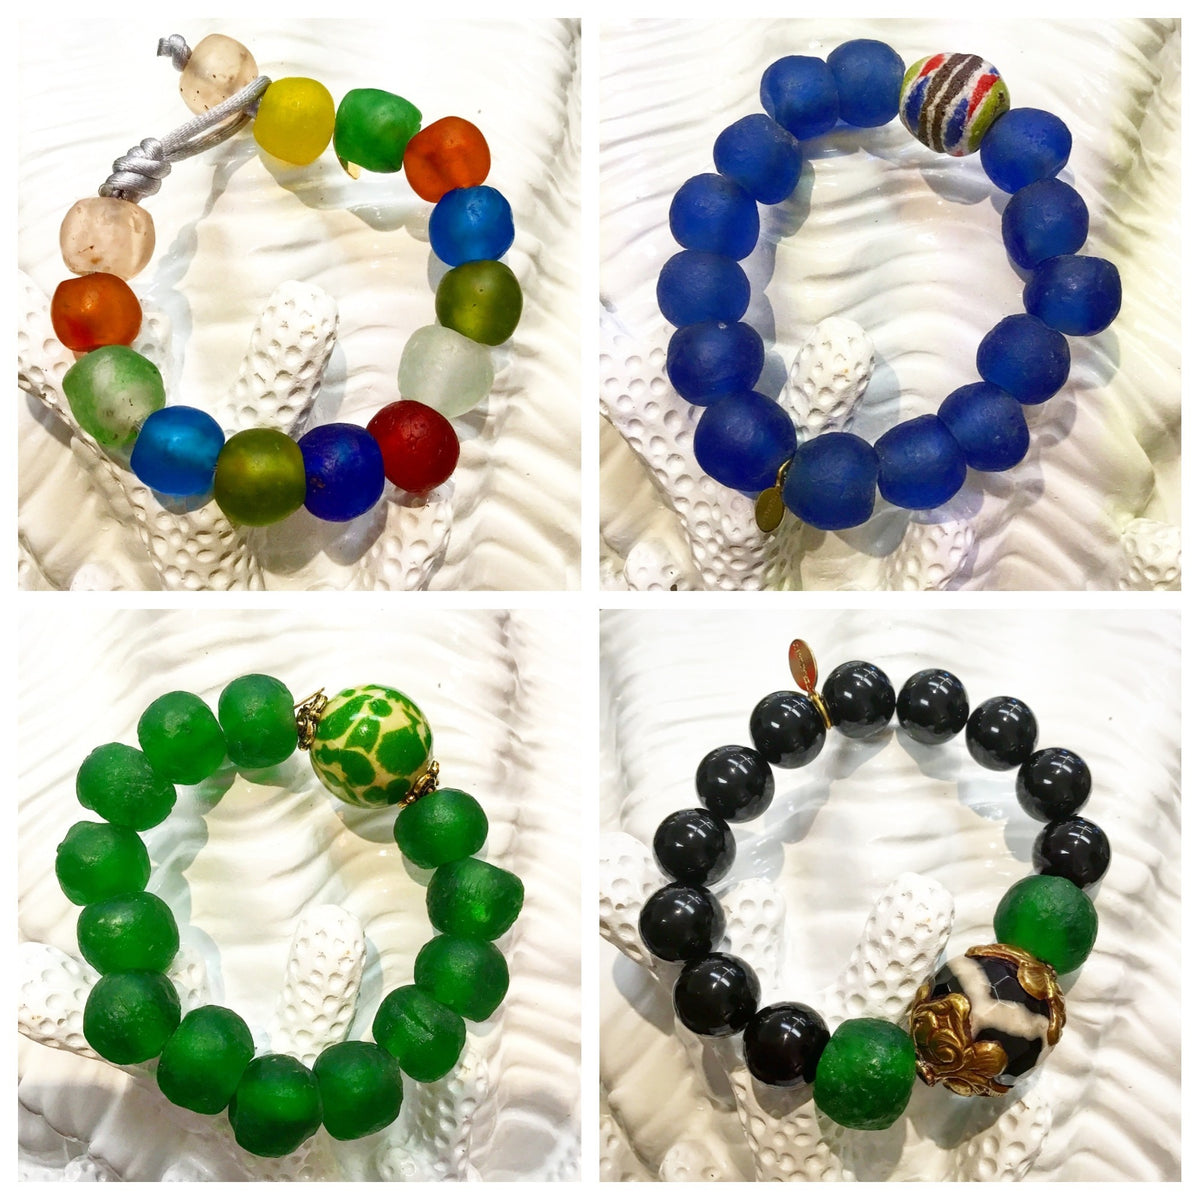 """Want It"" Wednesday: The Teramasu One-of-a-Kind Tumbled Glass Bracelet Collection"